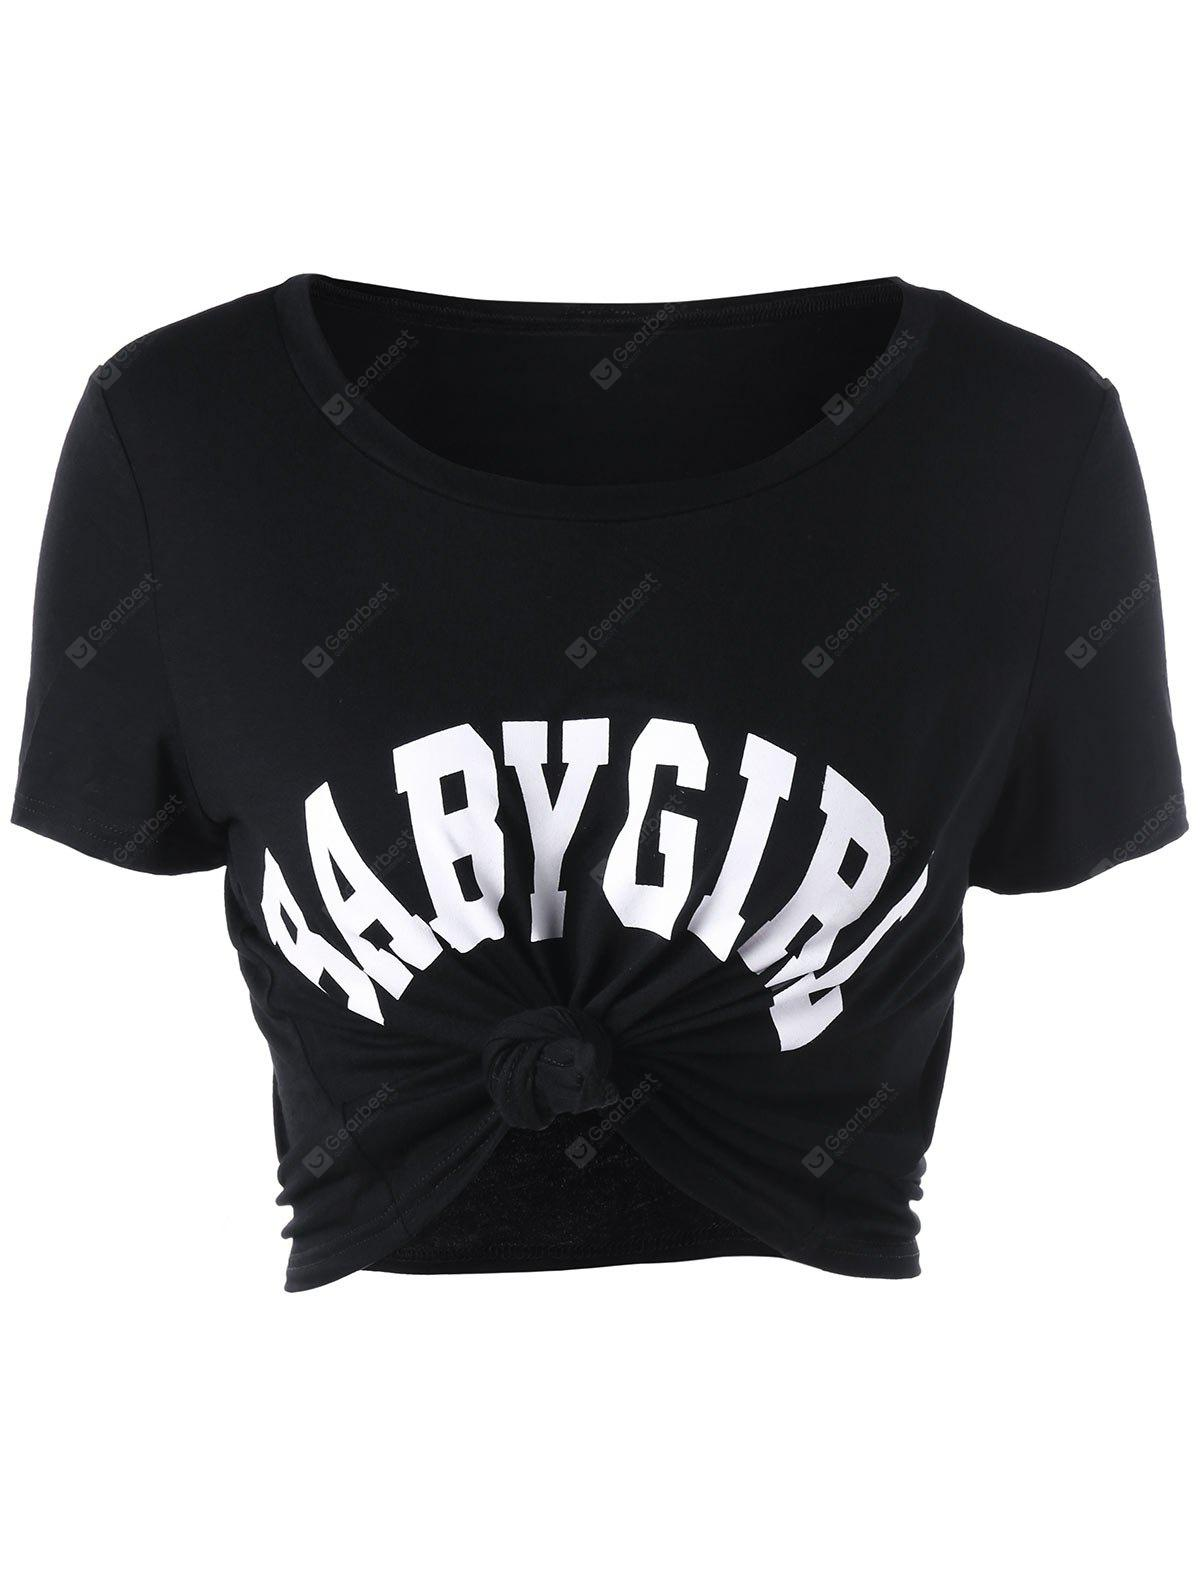 Baby Girl Cropped T-shirt